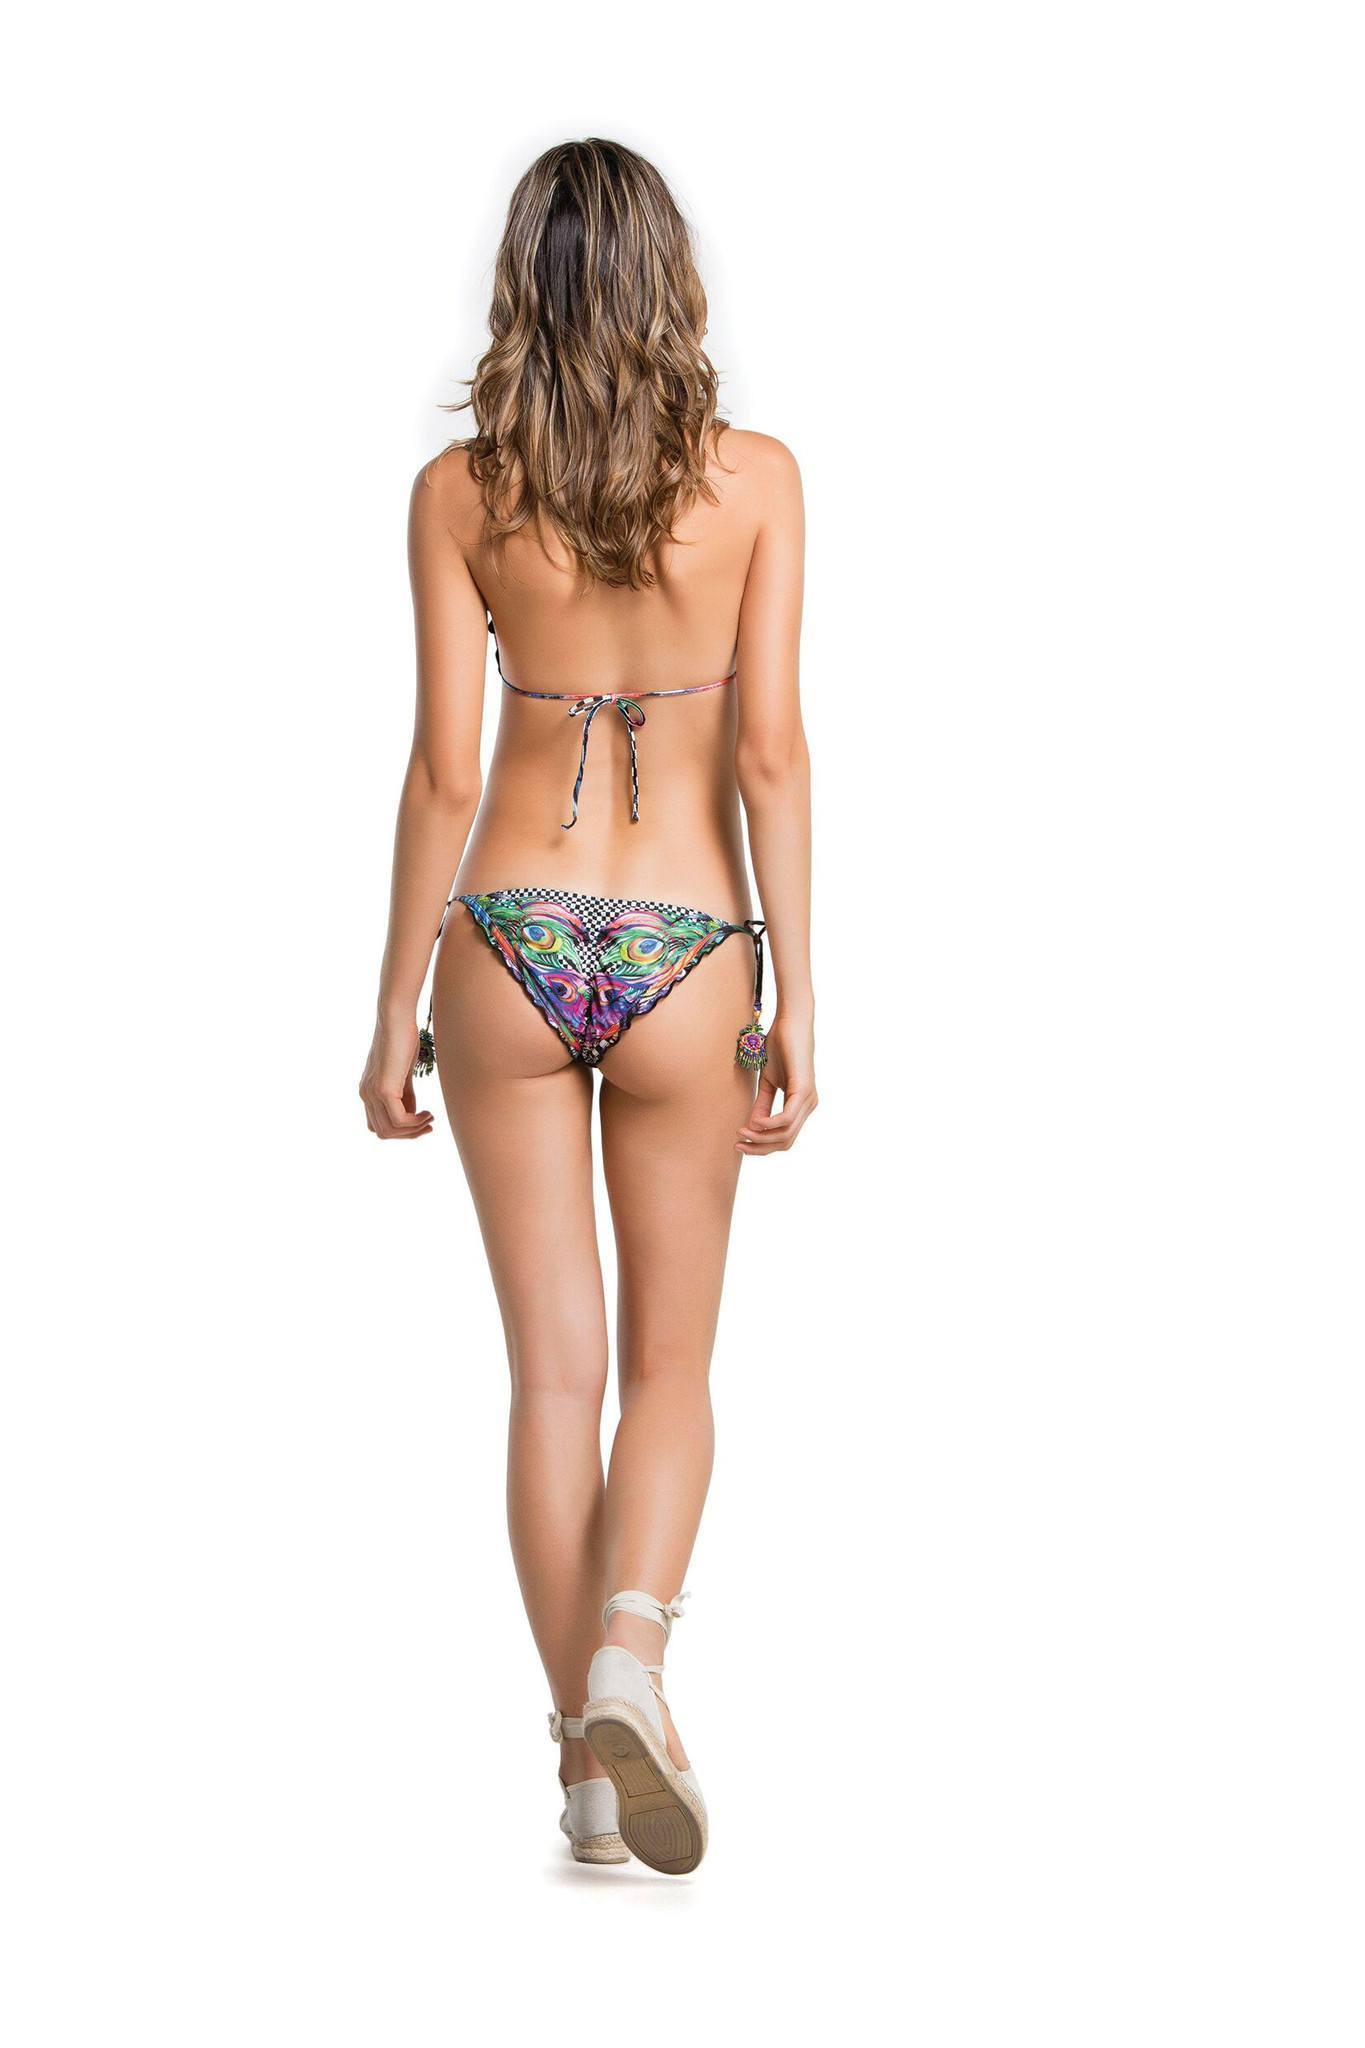 Agua Bendita - Bendito Plumaje V.B. Bikini Bottom - House of Mirza - 1